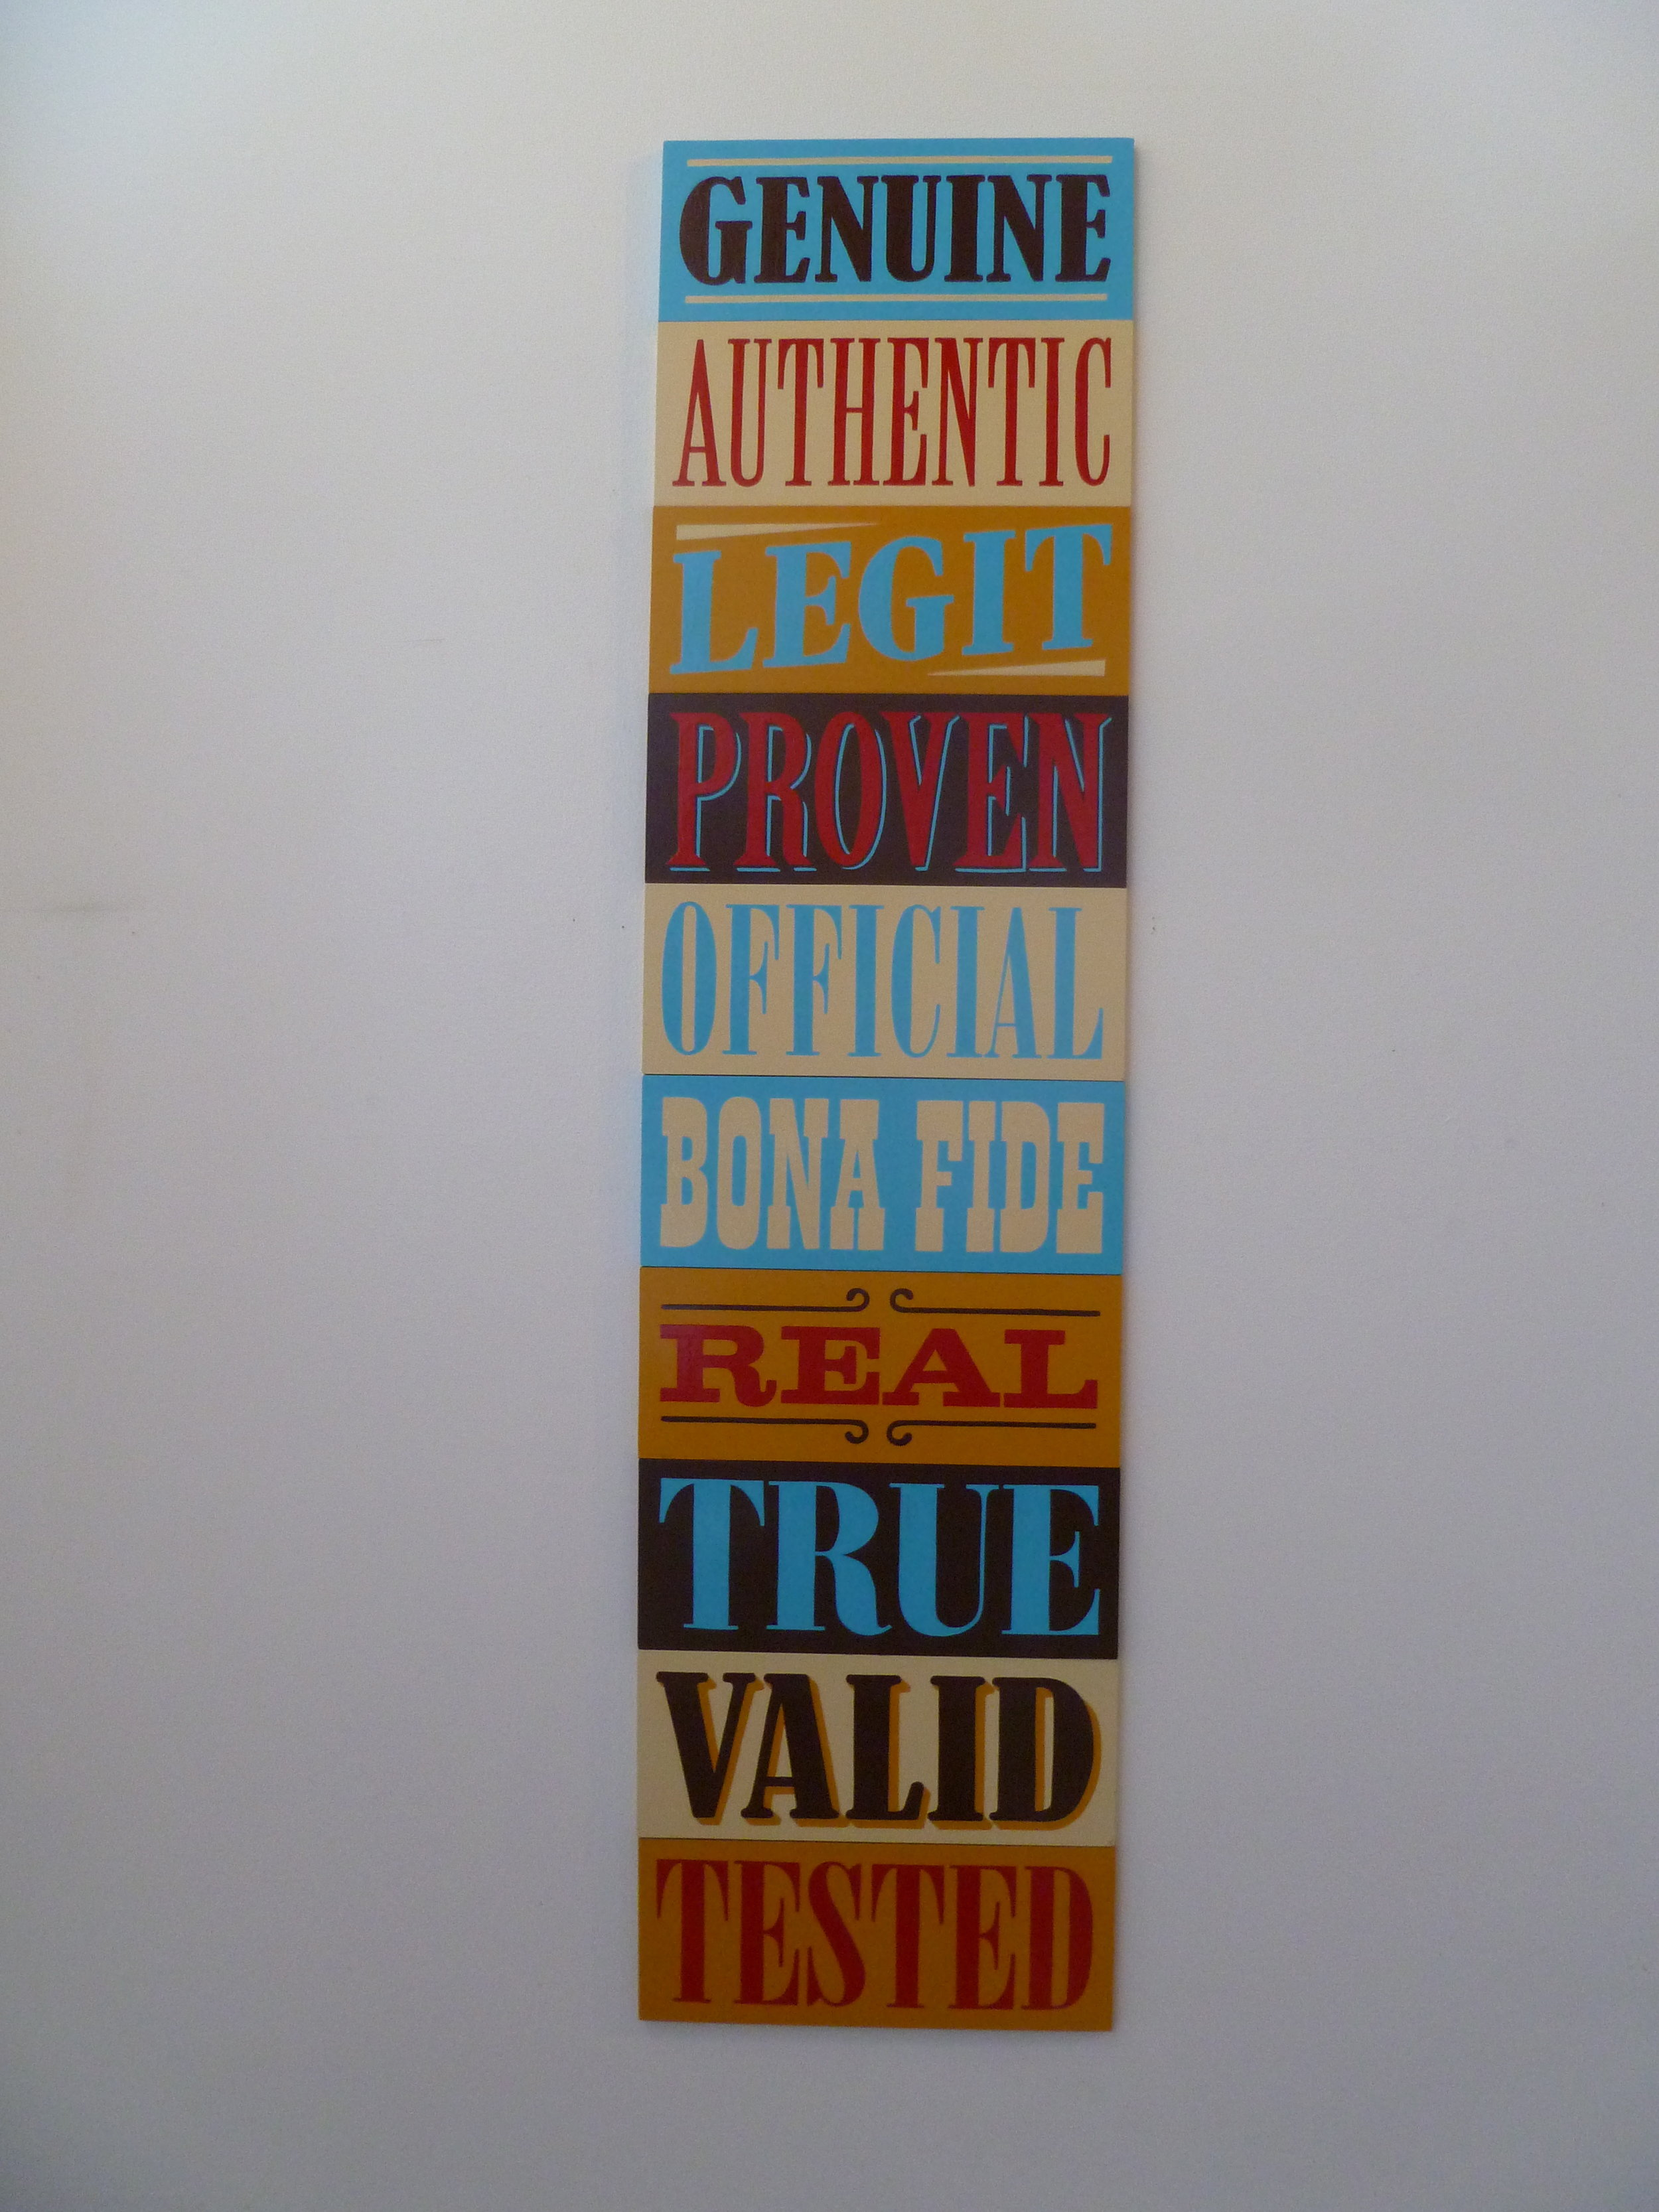 HAND-genuine-authentic-legit-proven-official-bona-fide-real-true-valid-tested_5439795856_o.jpg